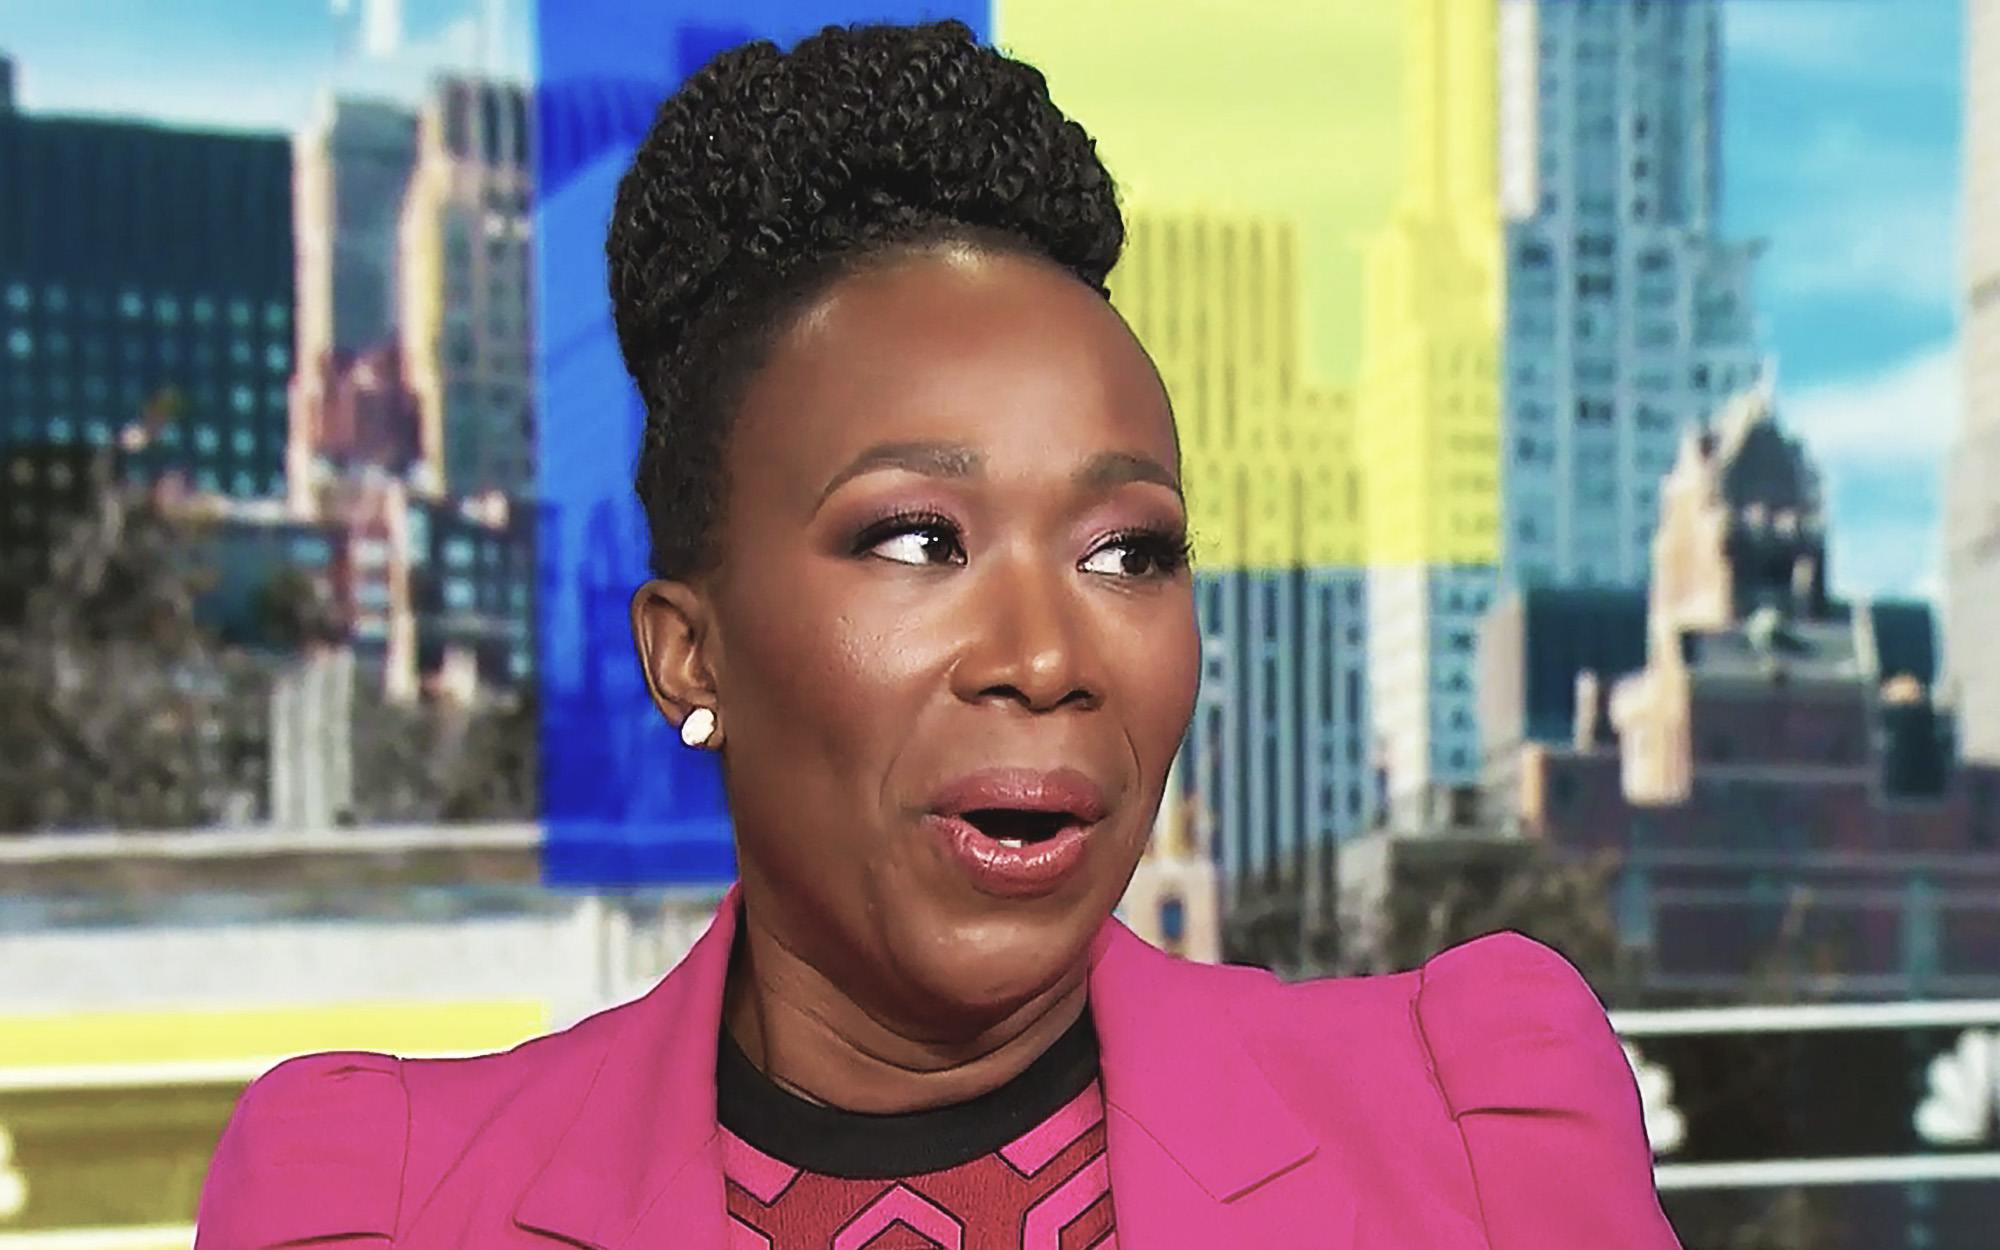 MSNBC's Joy Reid Accuses Trump of Bringing Out the 'Nazi' in People